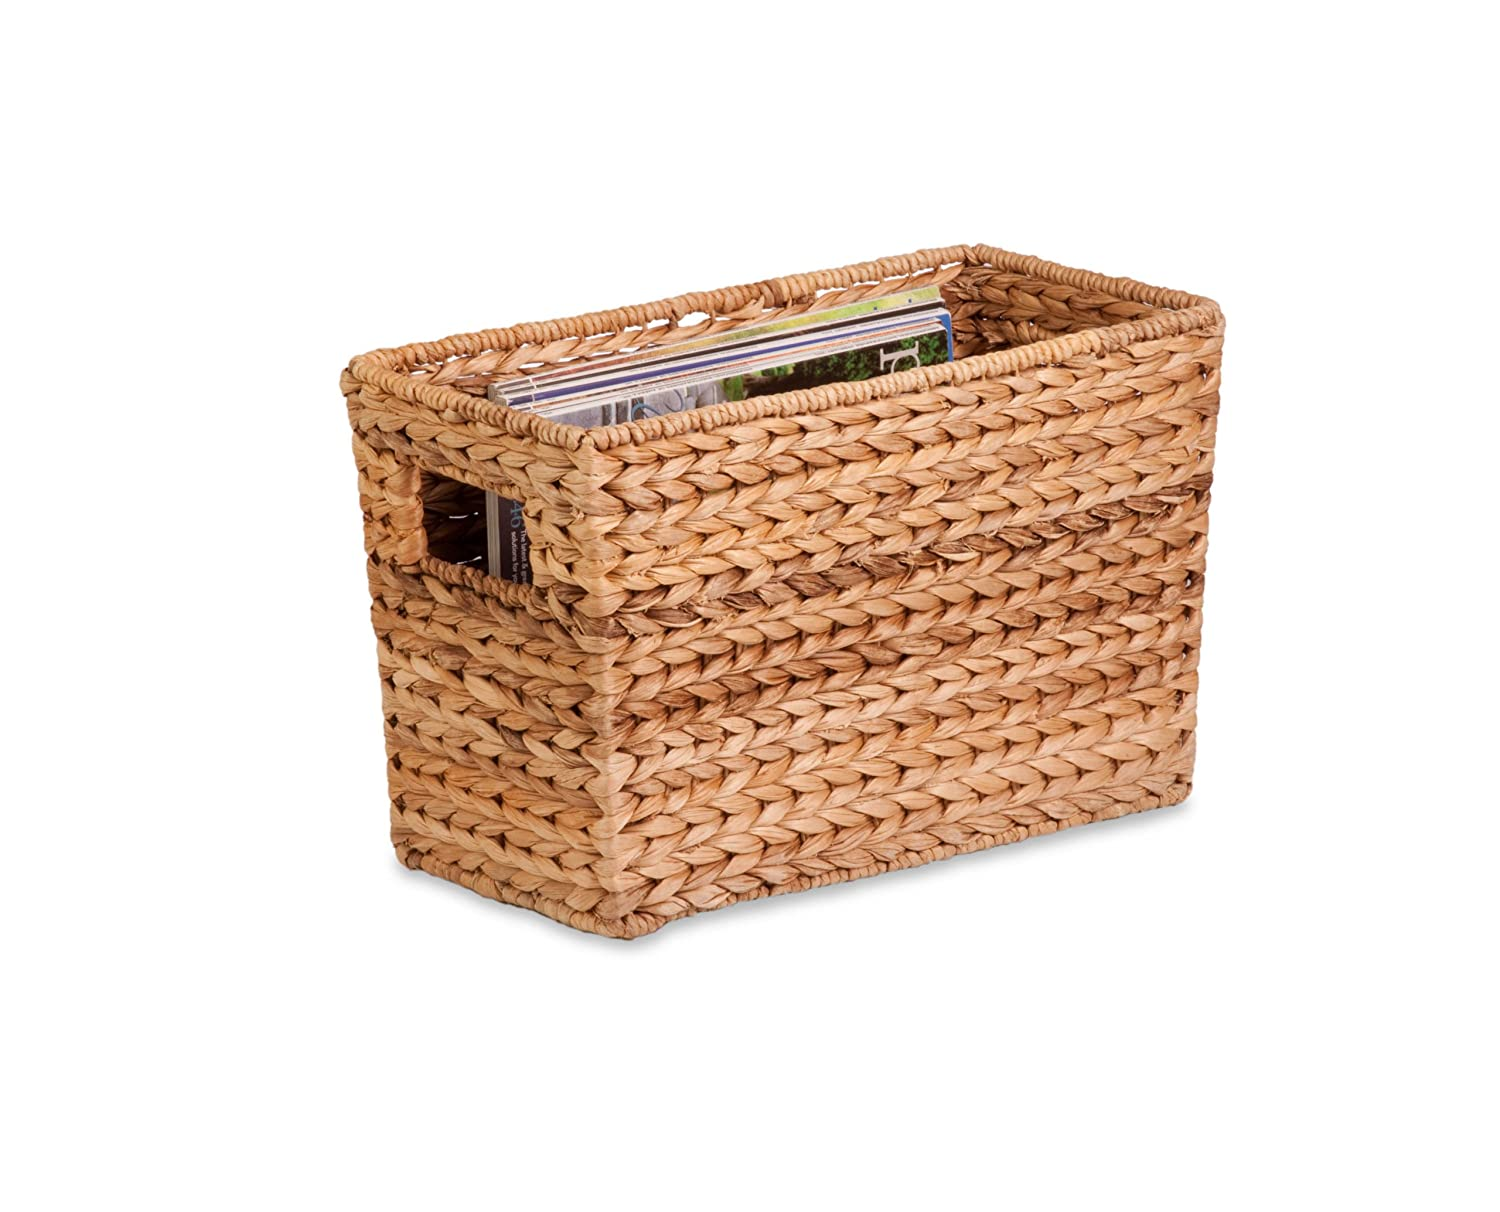 HoneyCanDo STO02883 Magazine Water Hyacinth Basket 155 L x 53 W x 10 H in